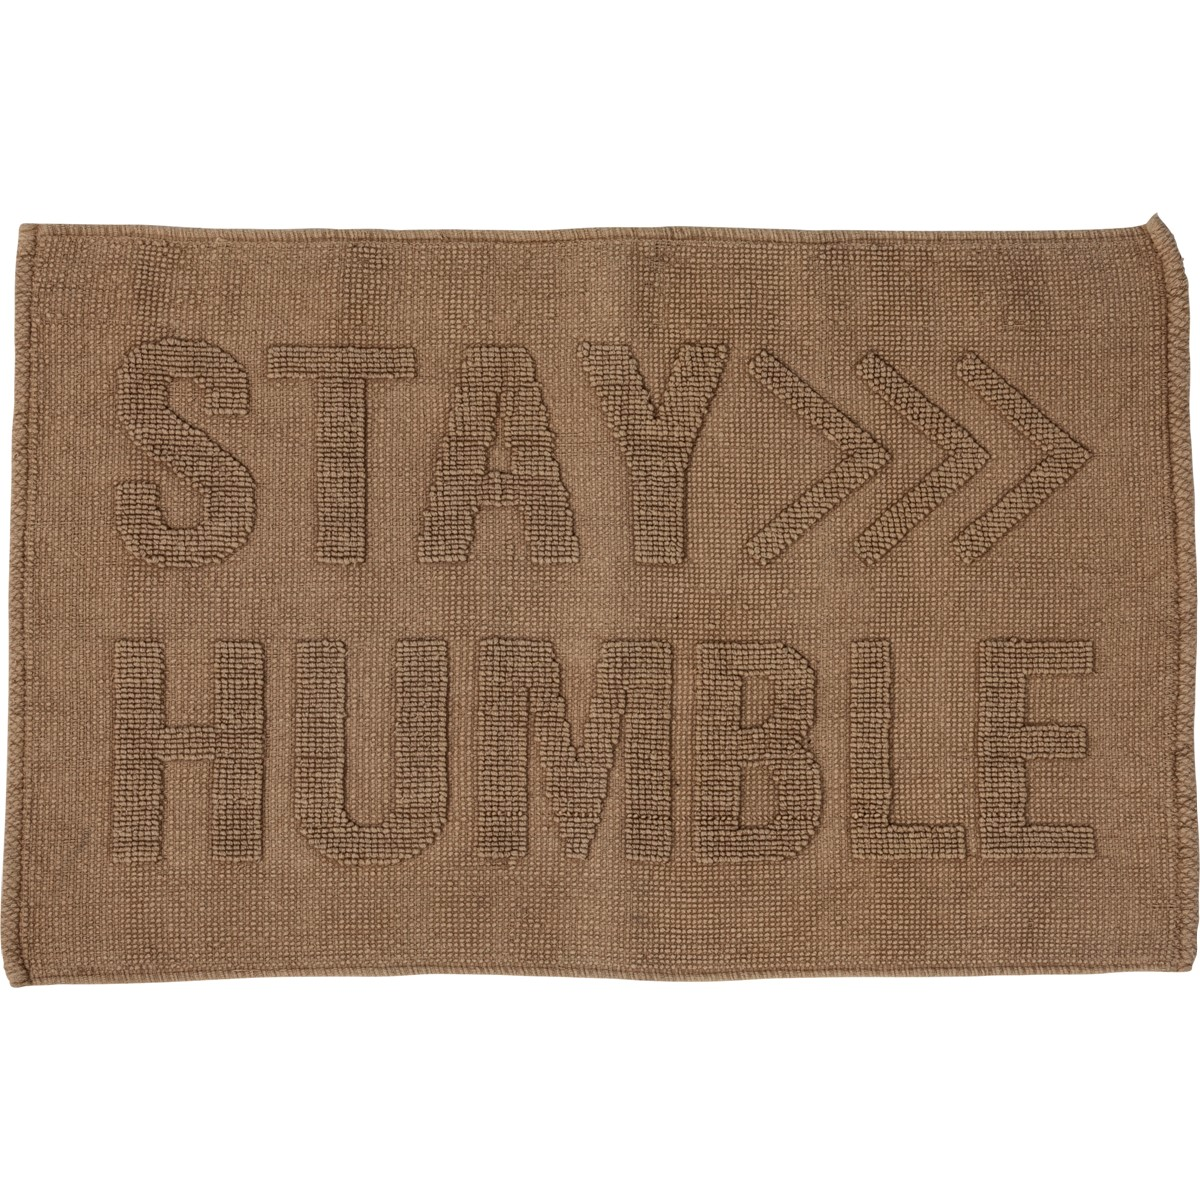 "Rug - Stay Humble - 32"" x 20"" - Cotton"